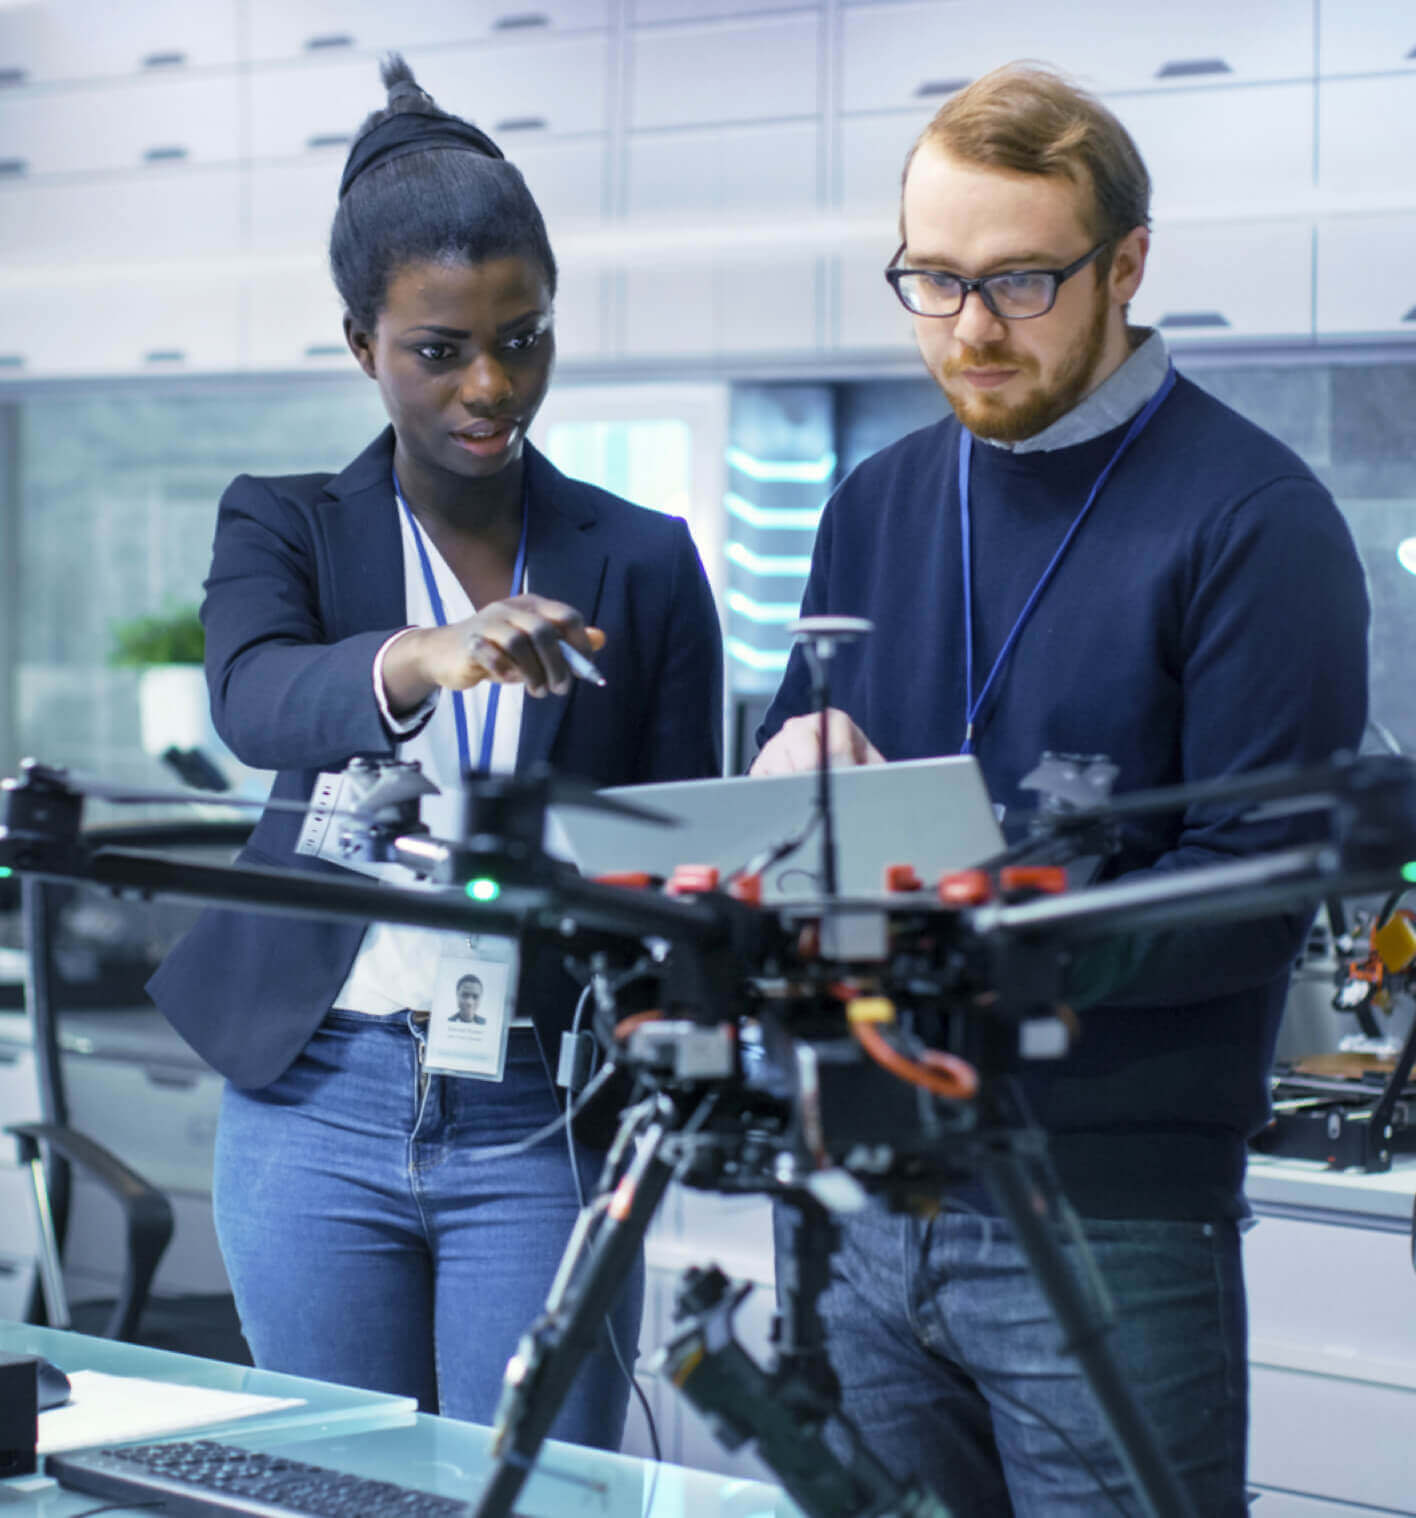 A black woman and Caucasian man working together on a drone in a lab.